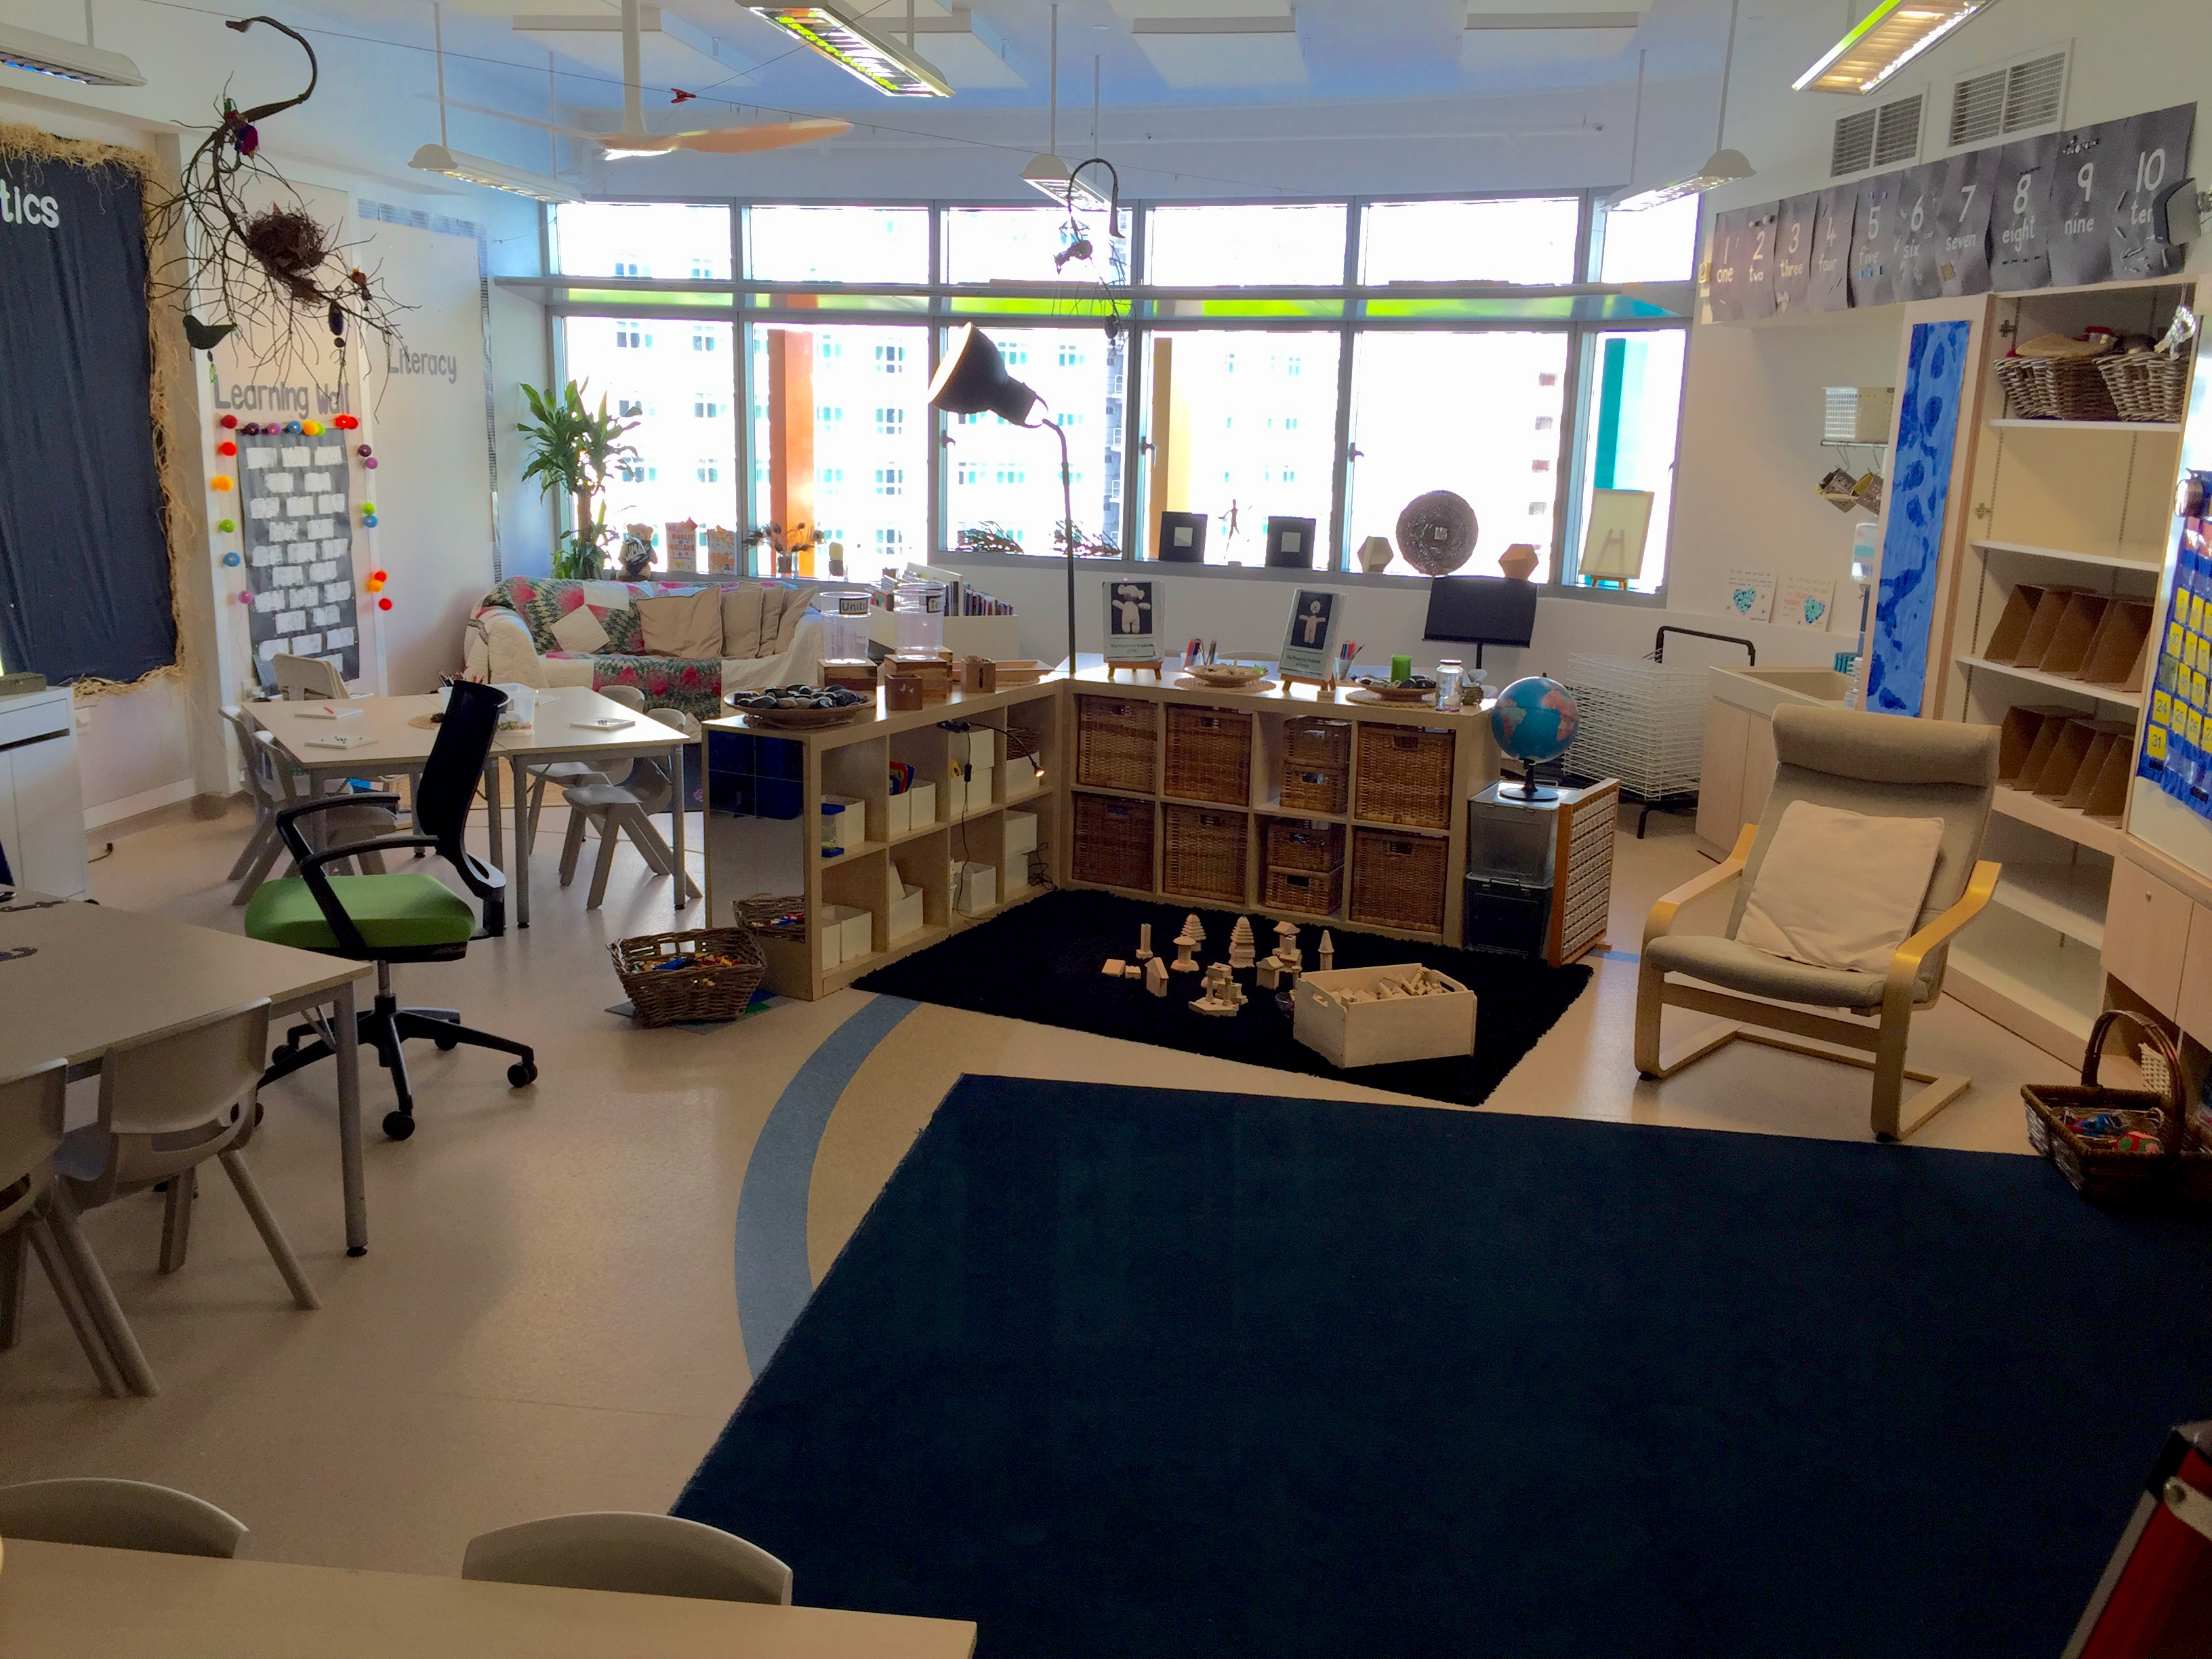 Natural Classroom Design ~ Classroom design matters tip of the iceberg